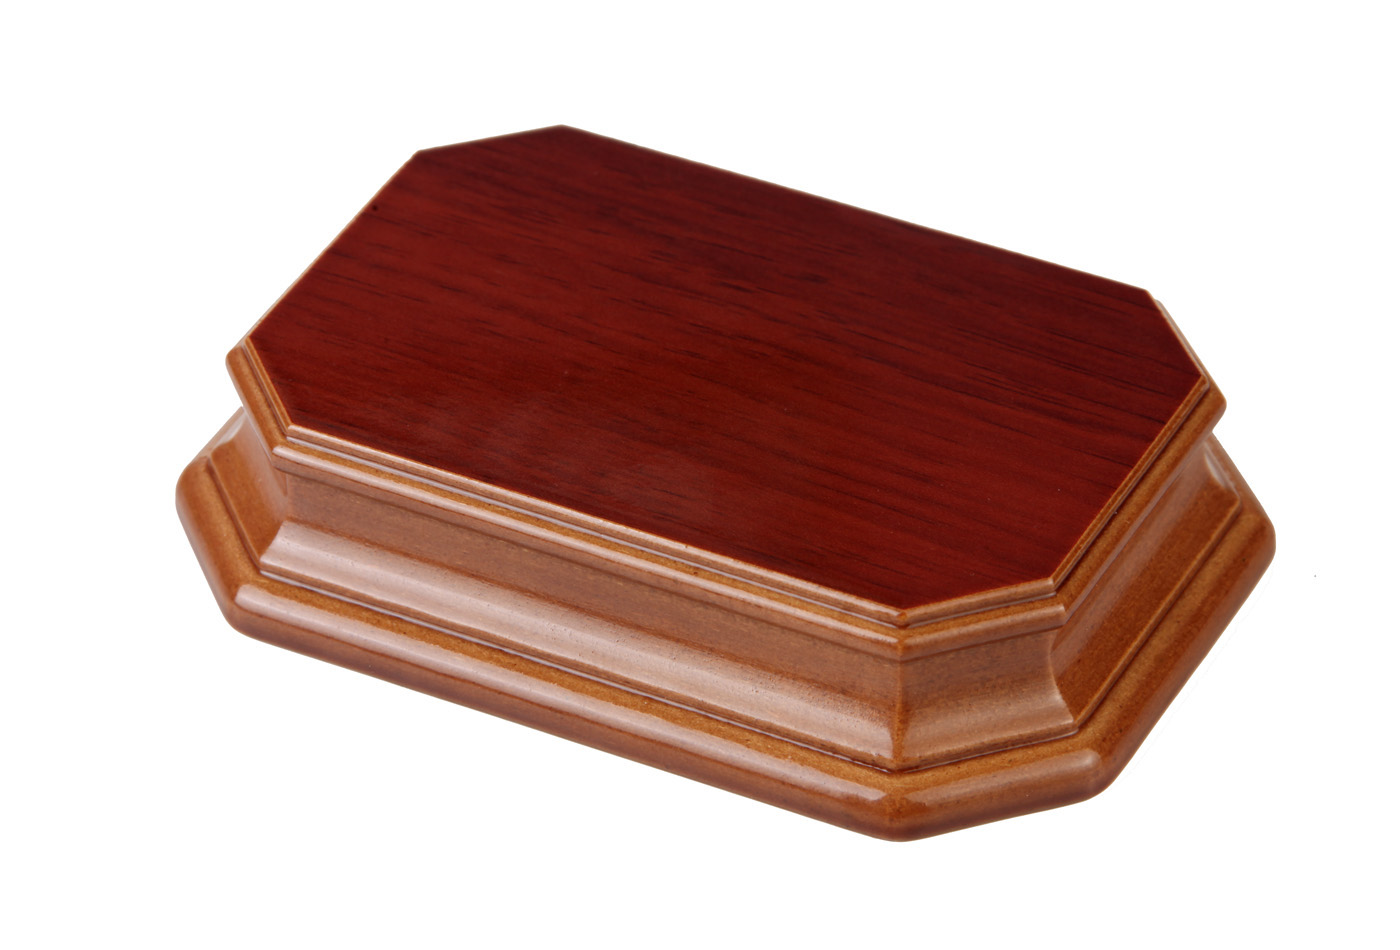 Octagonal natural oak pedestal